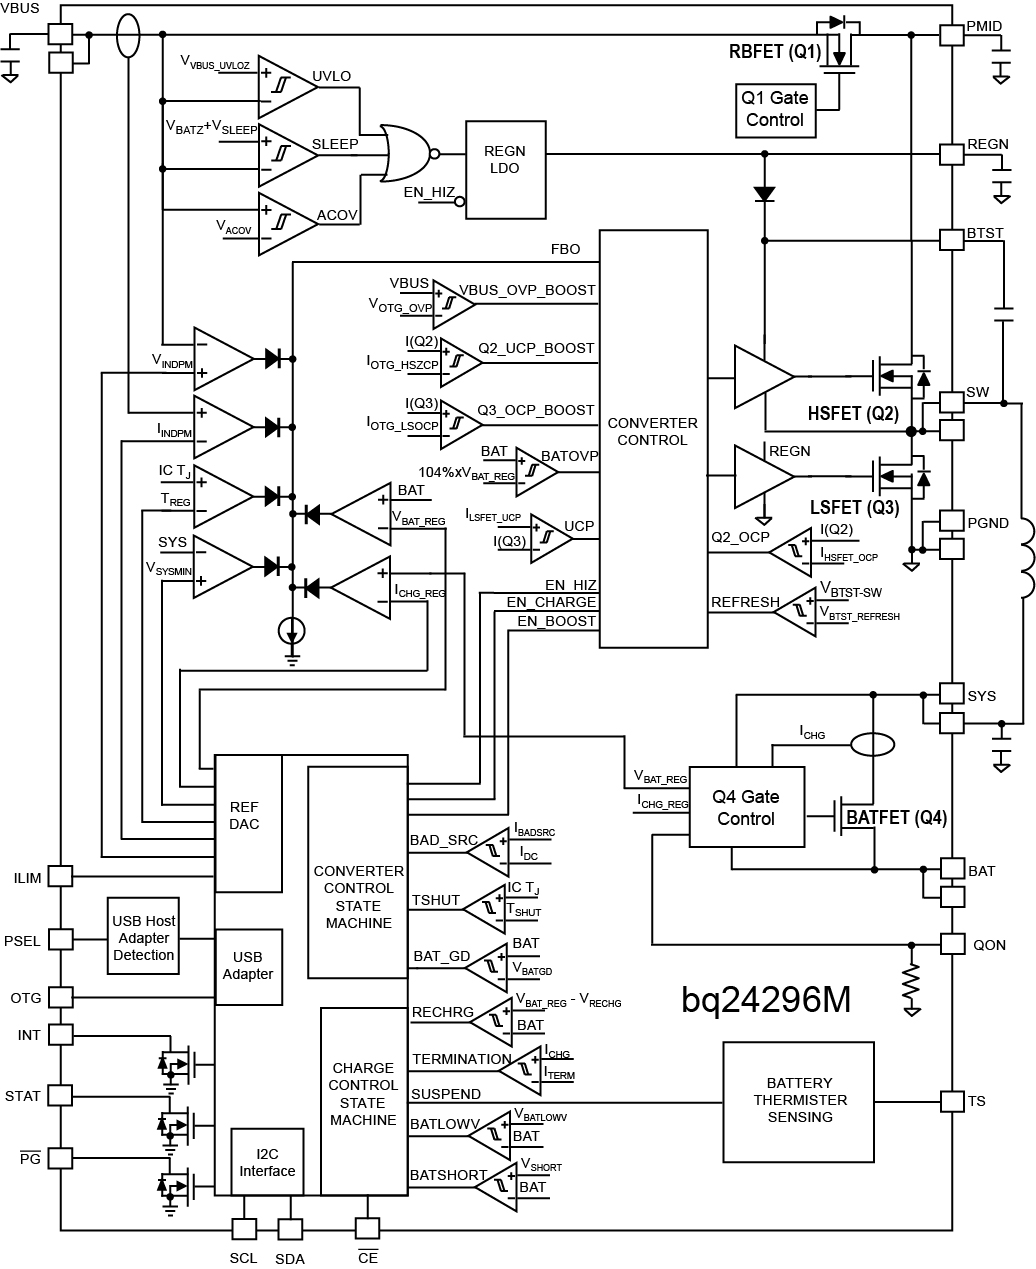 block diagram software all about circuits forum auto electricalblock diagram software all about circuits forum